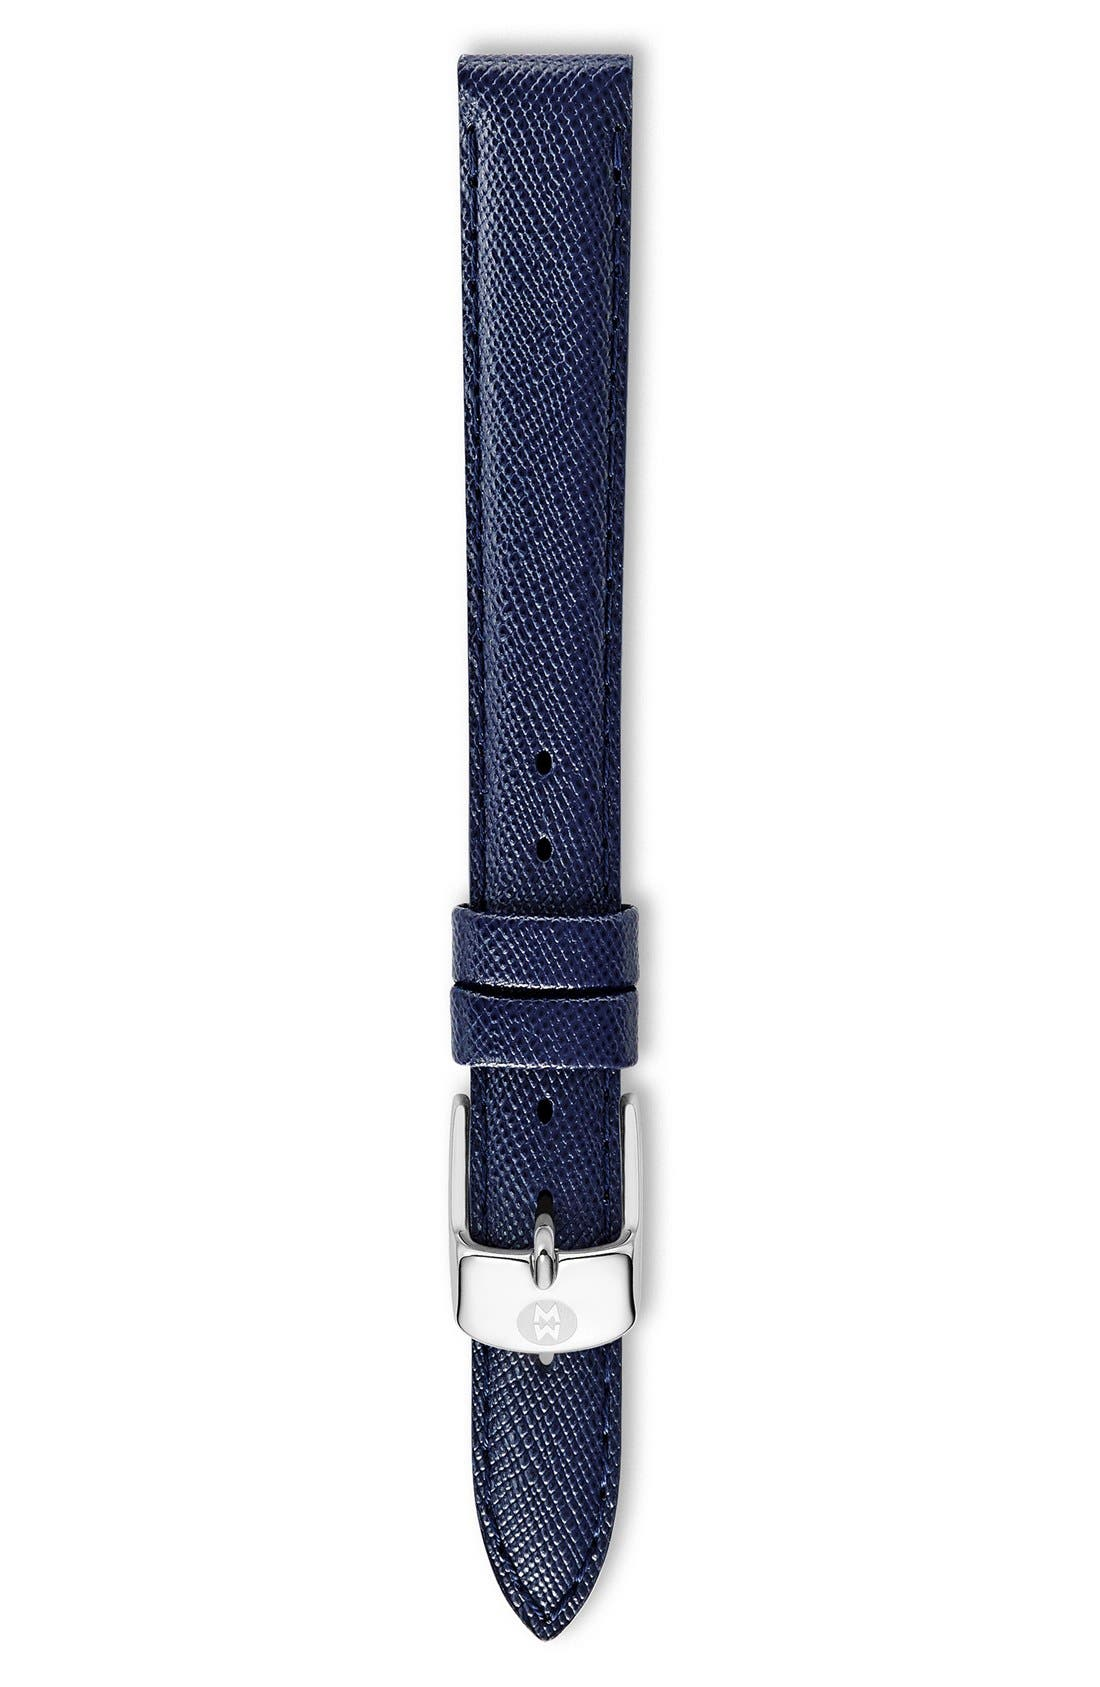 12mm Saffiano Leather Watch Strap,                         Main,                         color, 410